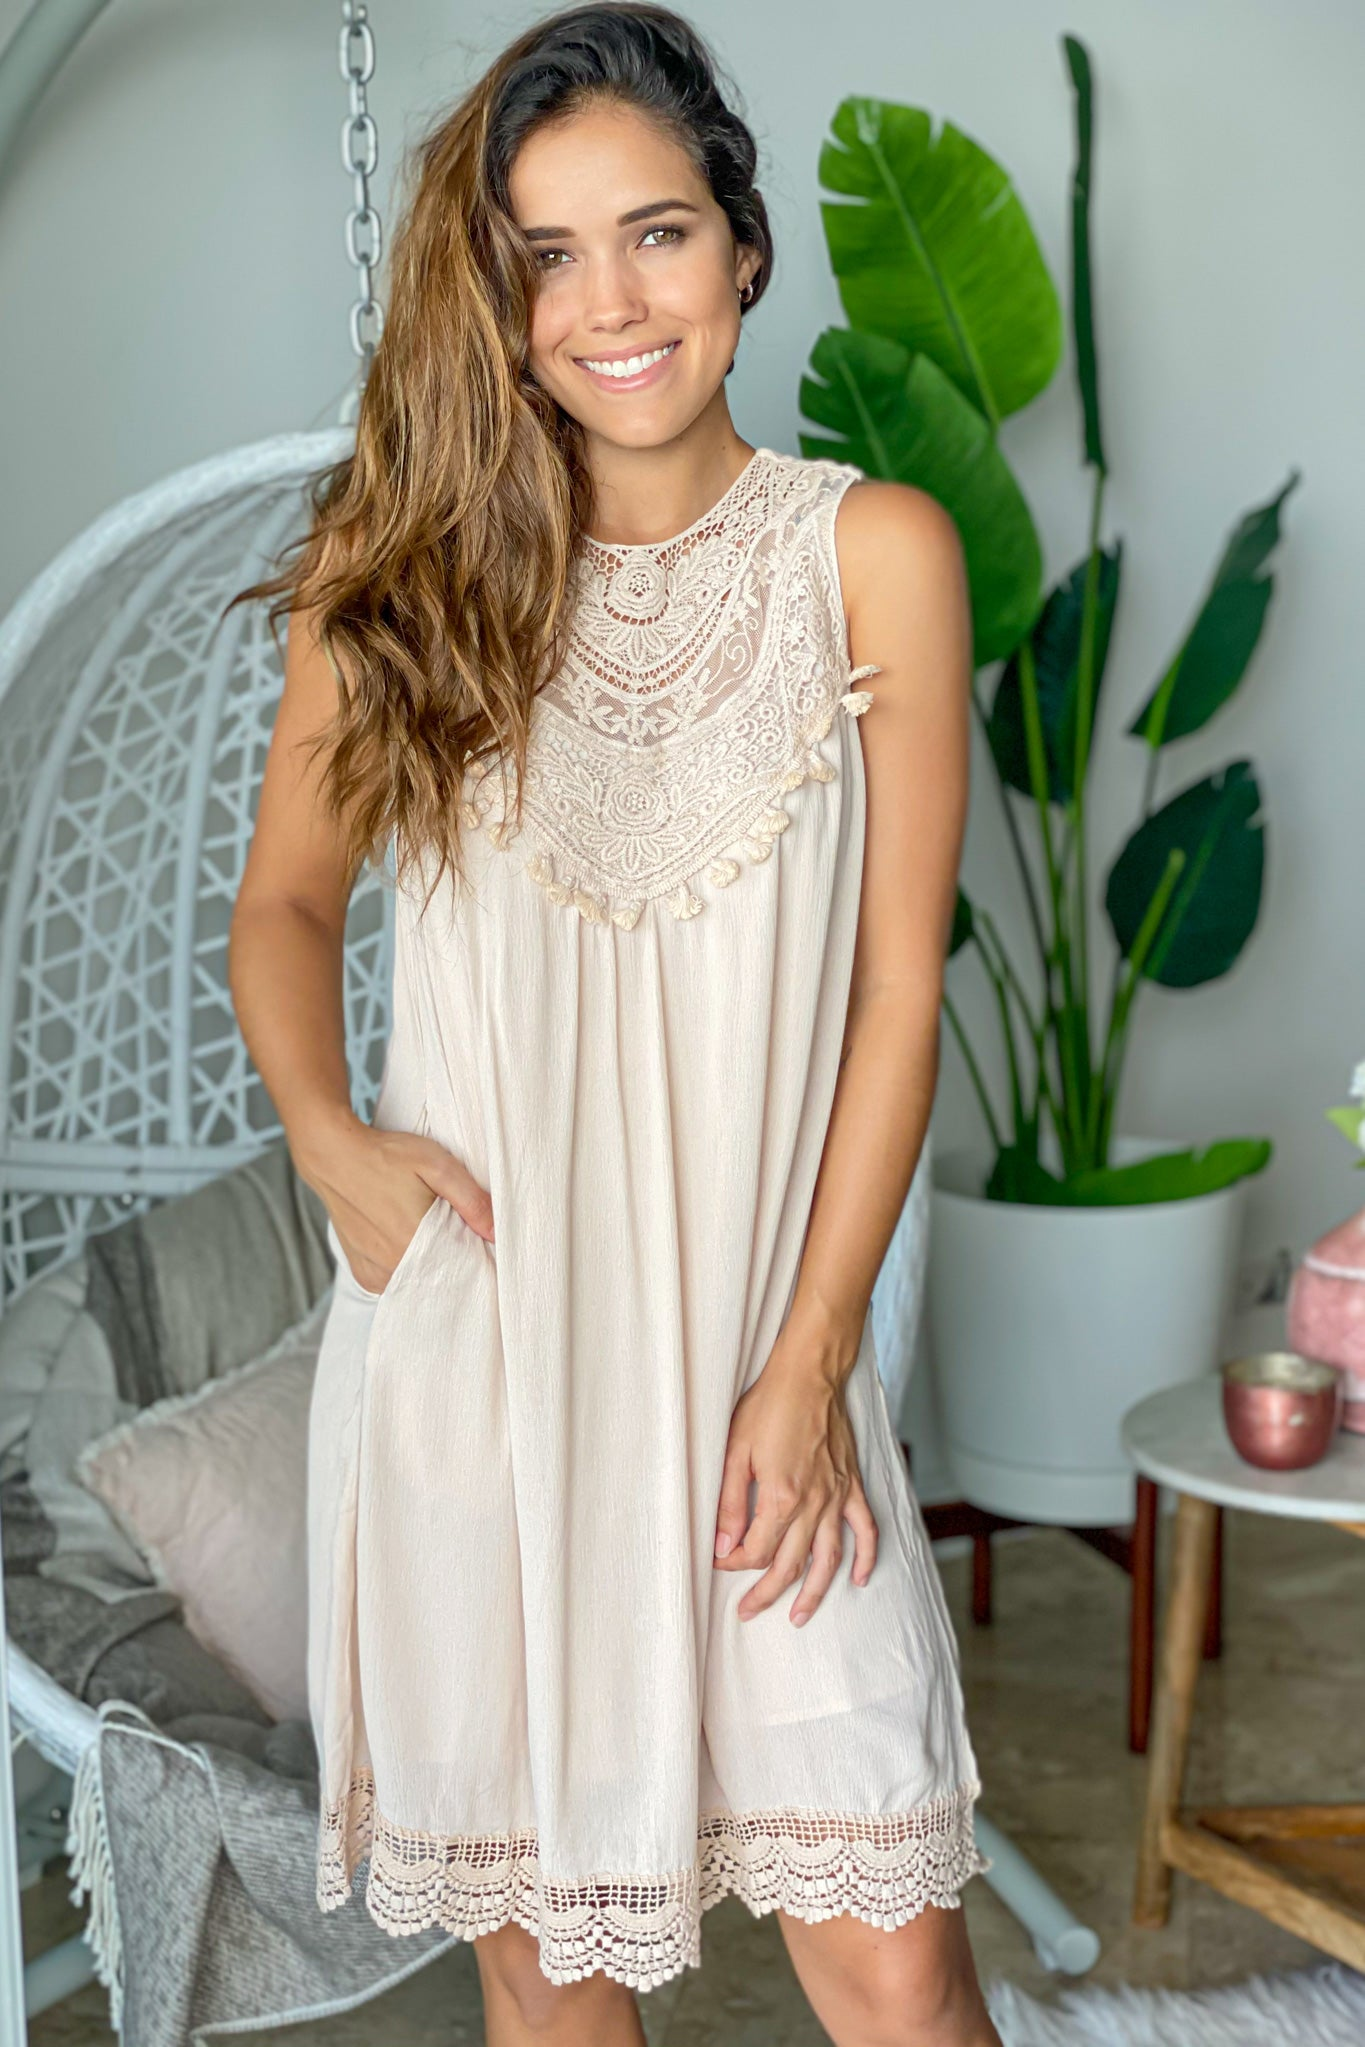 beige crochet top short dress